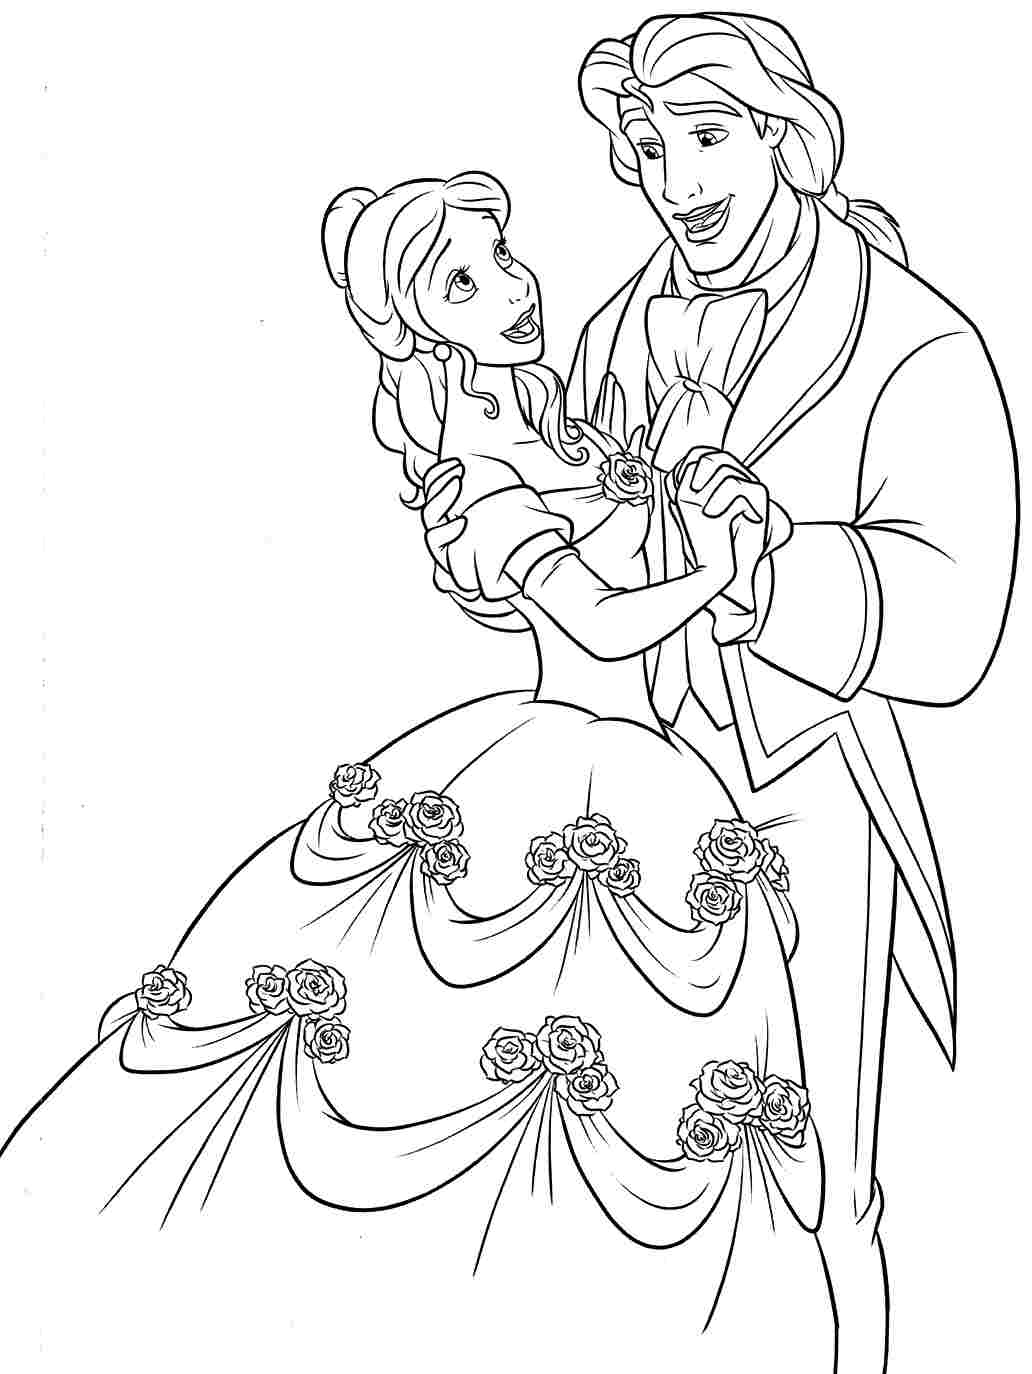 beauty and the beast colouring page beauty and beast coloring page 13 coloringcolorcom colouring and beauty page the beast